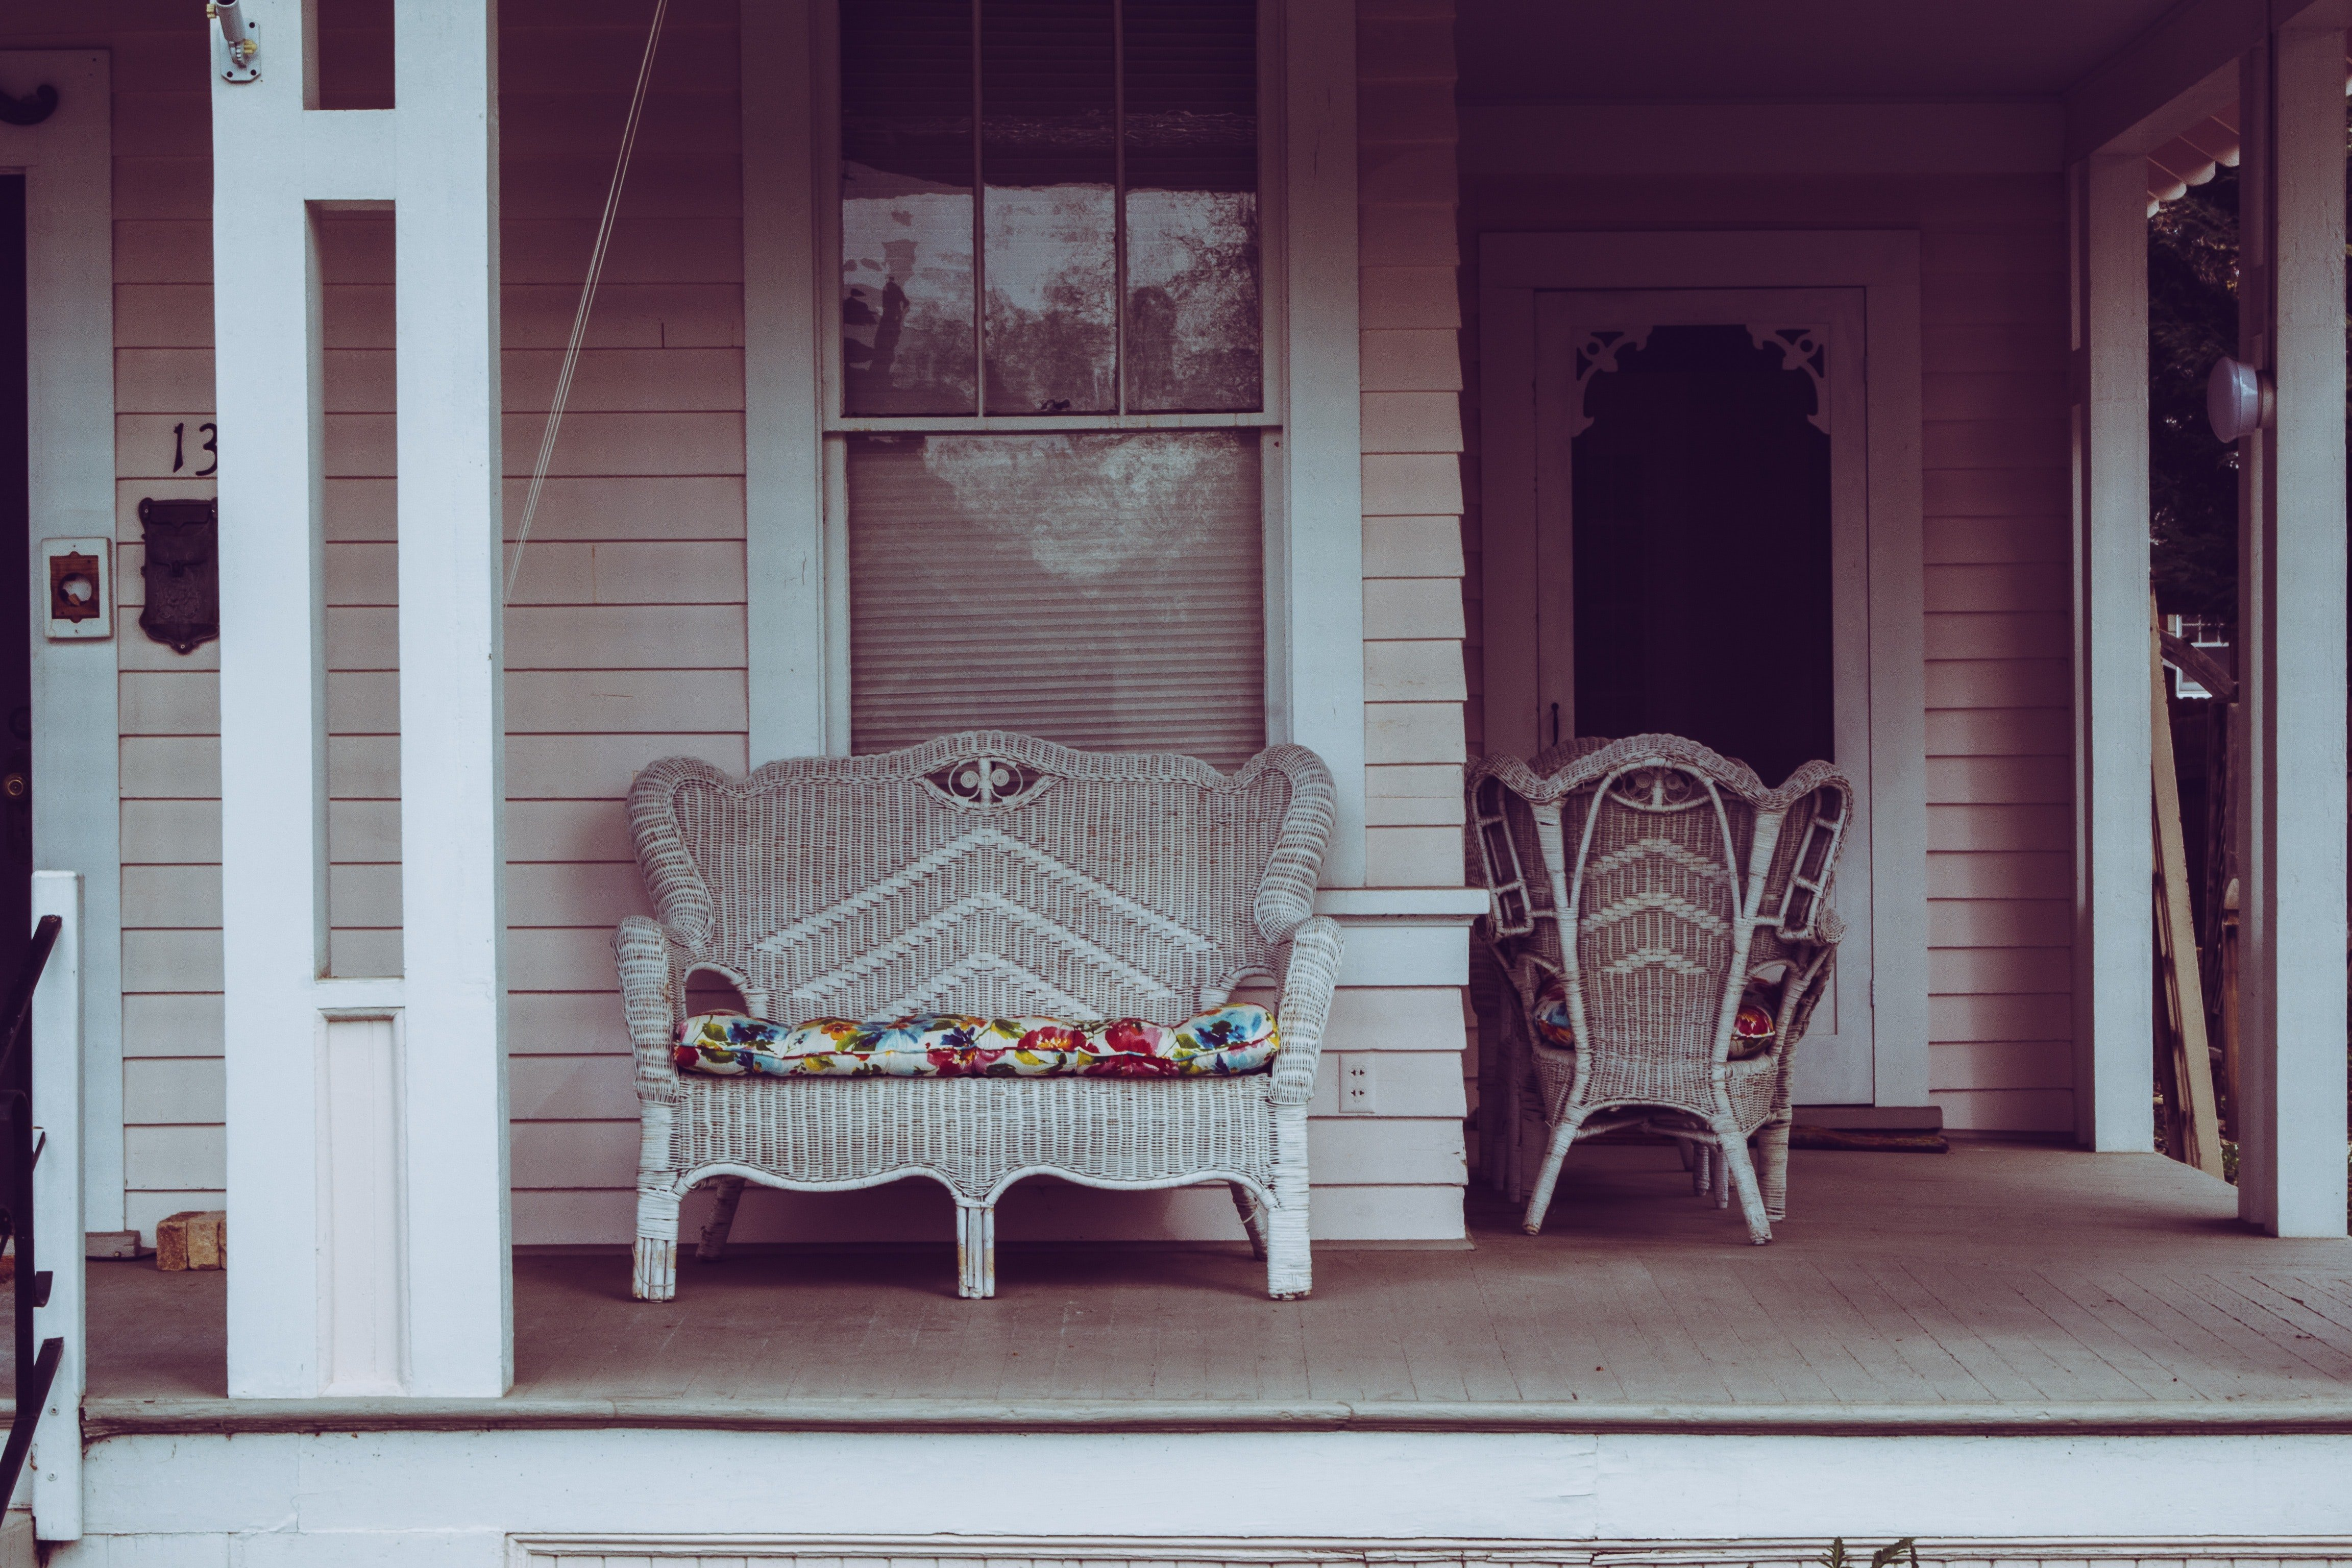 Pictured - A white wicker padded bench | Source: Pexels